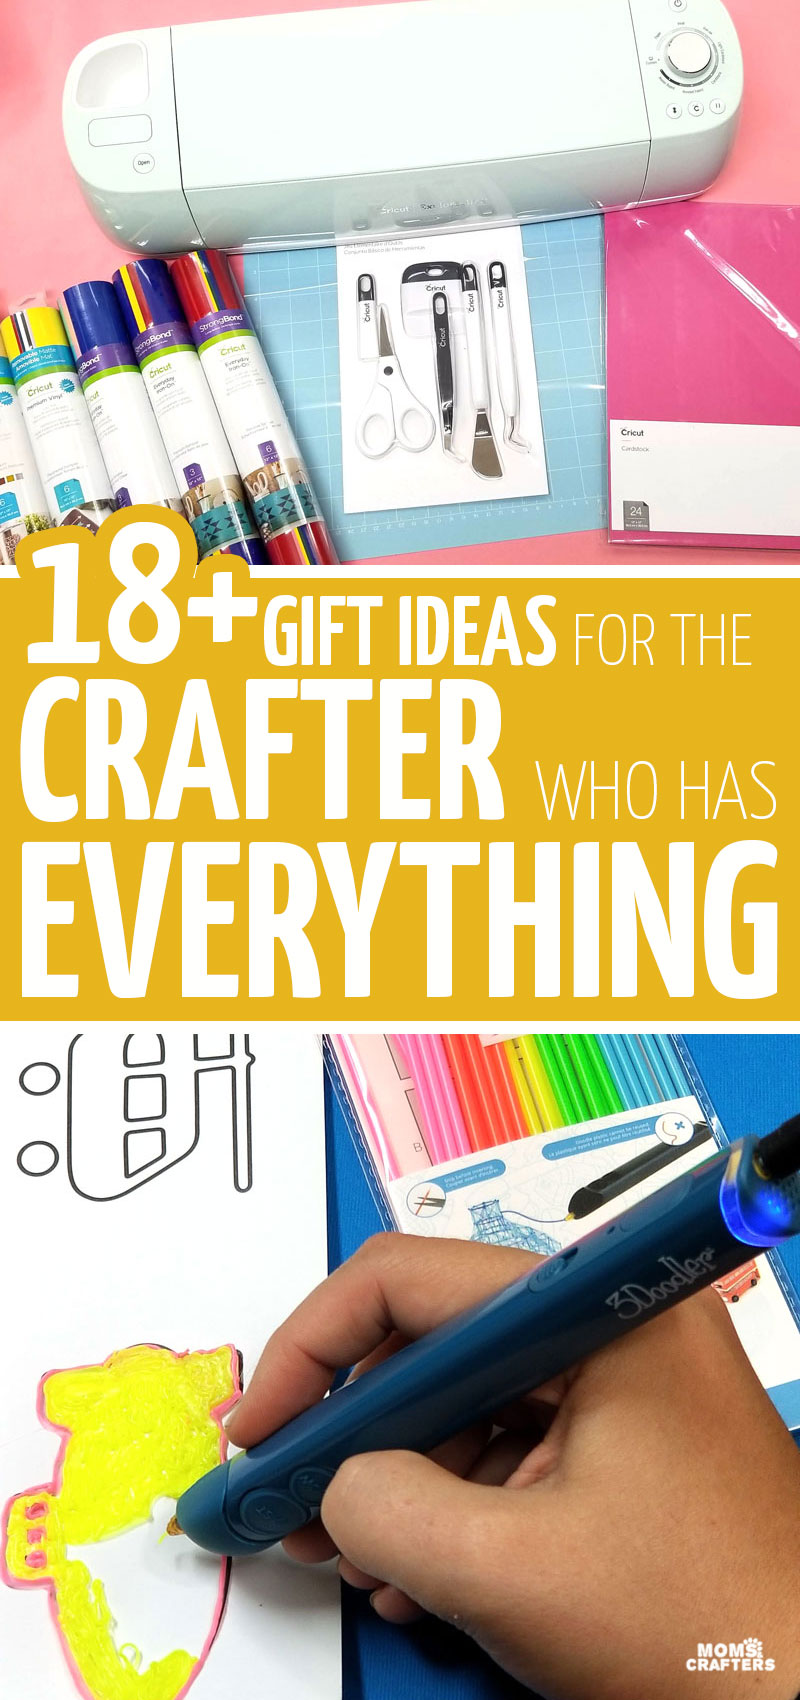 click for gift ideas to buy for creatives and unique gifts for the crafter who has everything! These cool crafting gadgets, merch, and supplies are buth affordable and luxurious and everything in between.